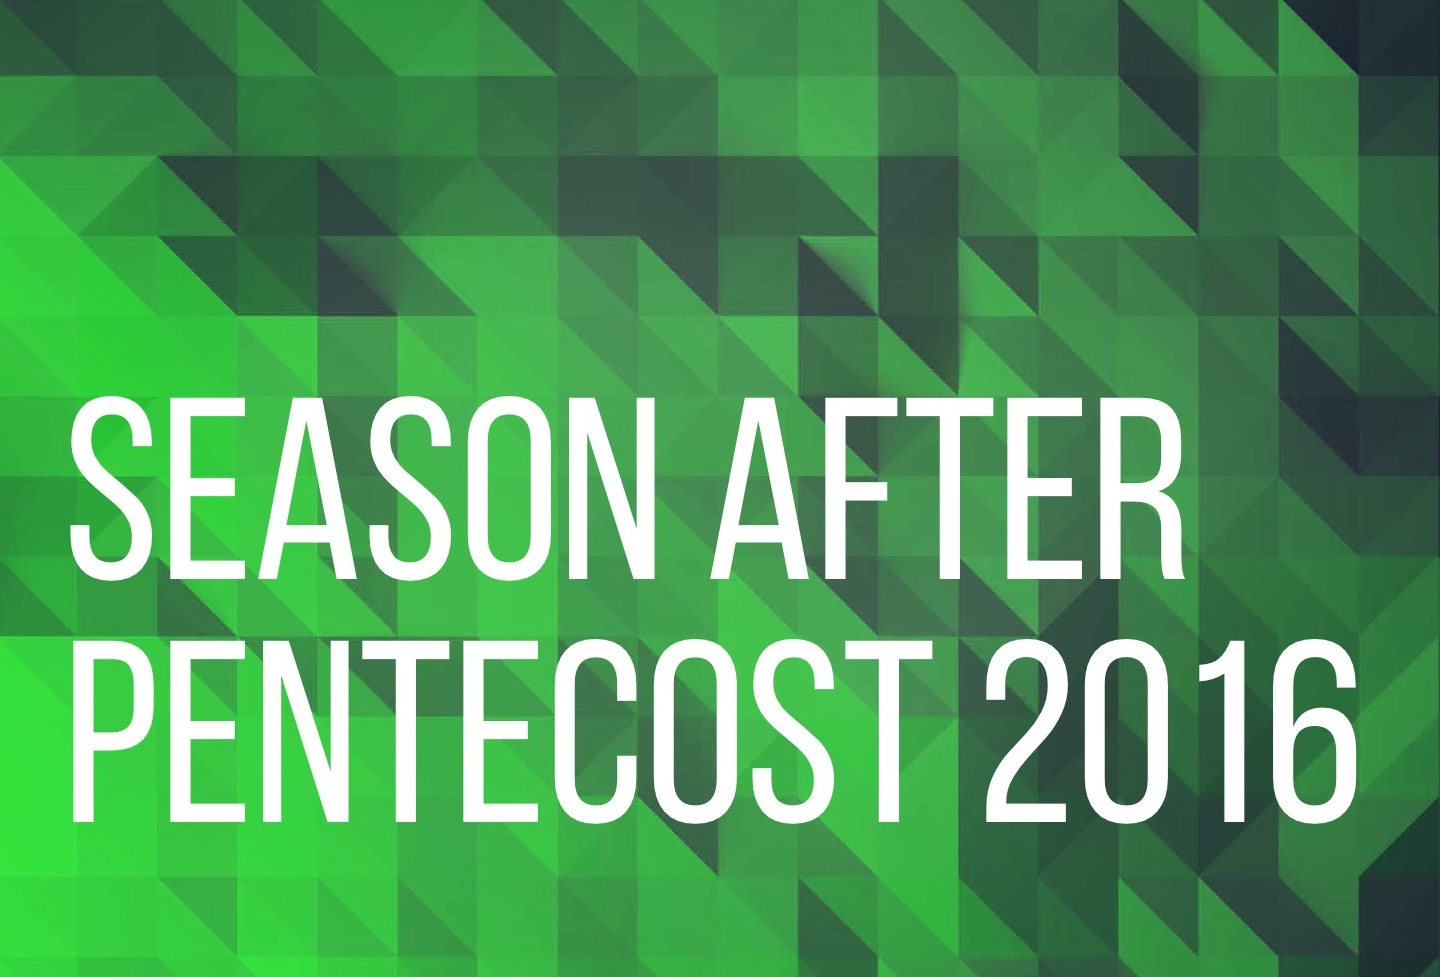 Season After Pentecost 2016